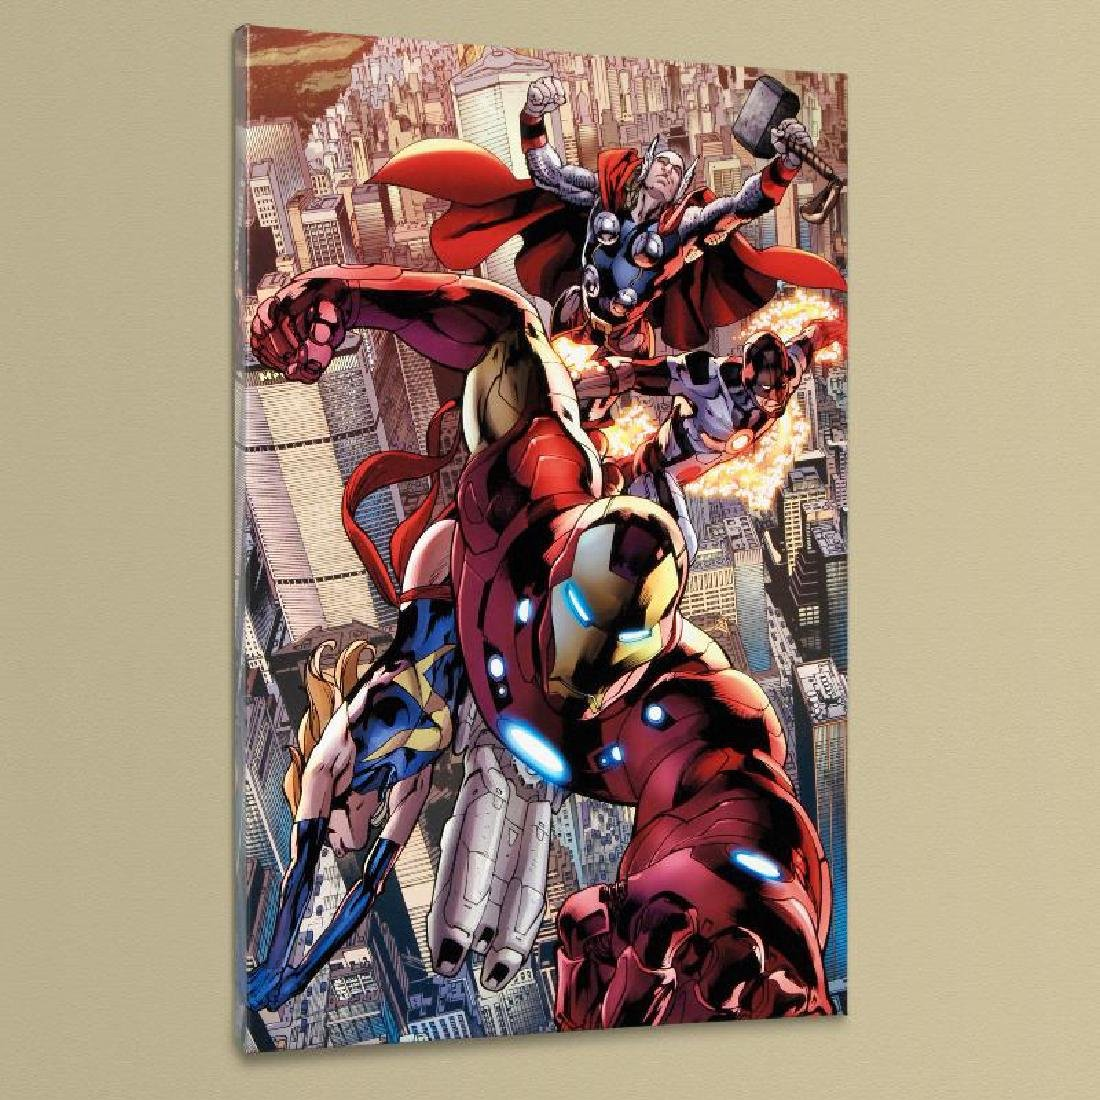 """Avengers #12.1"" Extremely LIMITED EDITION Giclee on"